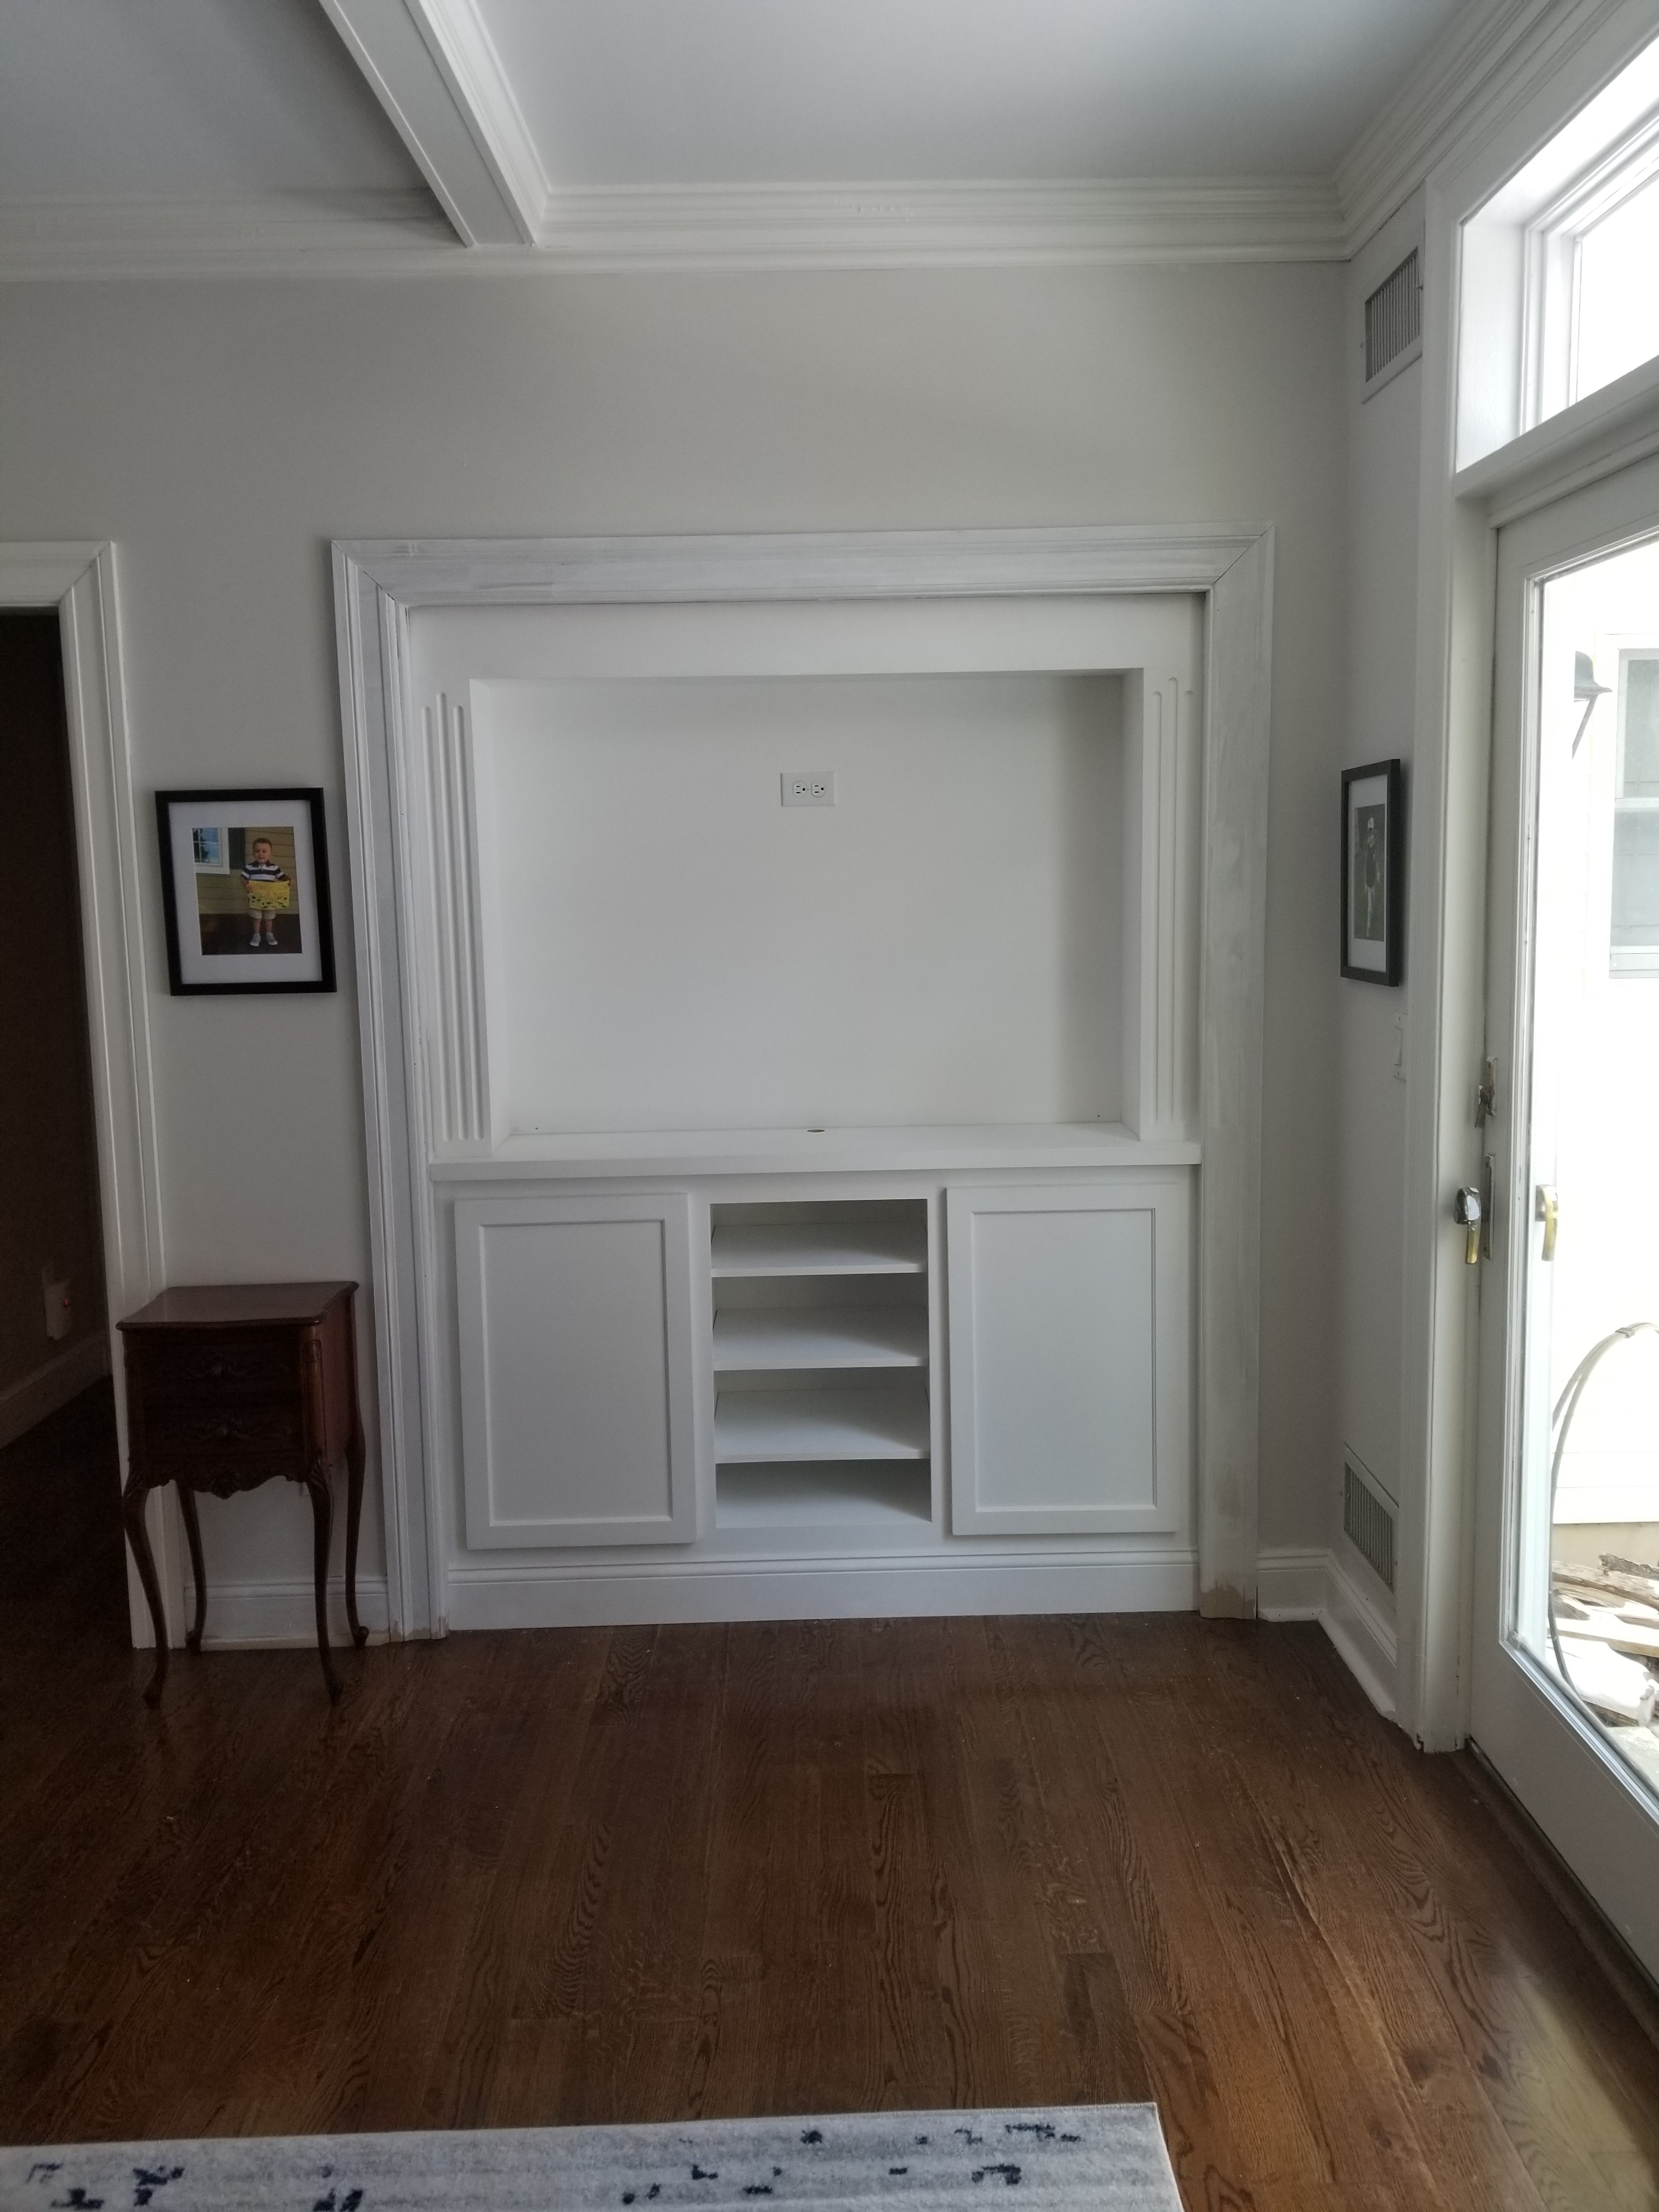 Paint Grade Wall Unit Built Into Existing Closet 1